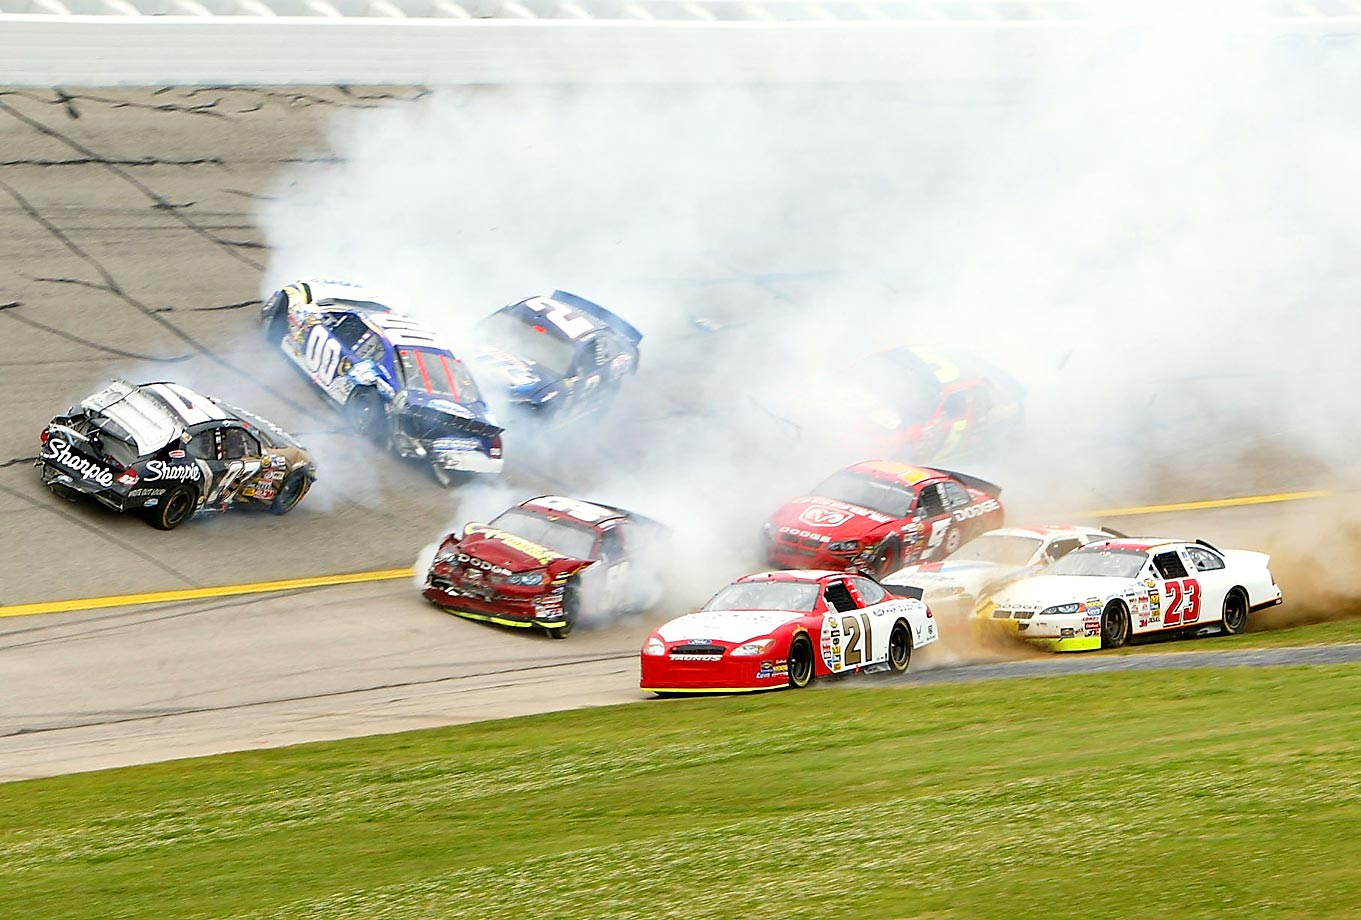 "The ""Big One"" came on lap 84 when Tony Stewart tapped the rear of Kurt Busch's car near the bottom of the banked track, sending Busch sliding sideways up the banking right in front of a huge pack of cars. Before the crashing and spinning was through, 10 cars were scattered around the fourth turn. The cars driven by Busch, Derrike Cope and Kenny Wallace had to be hauled off on flatbed trucks. There were no injuries."